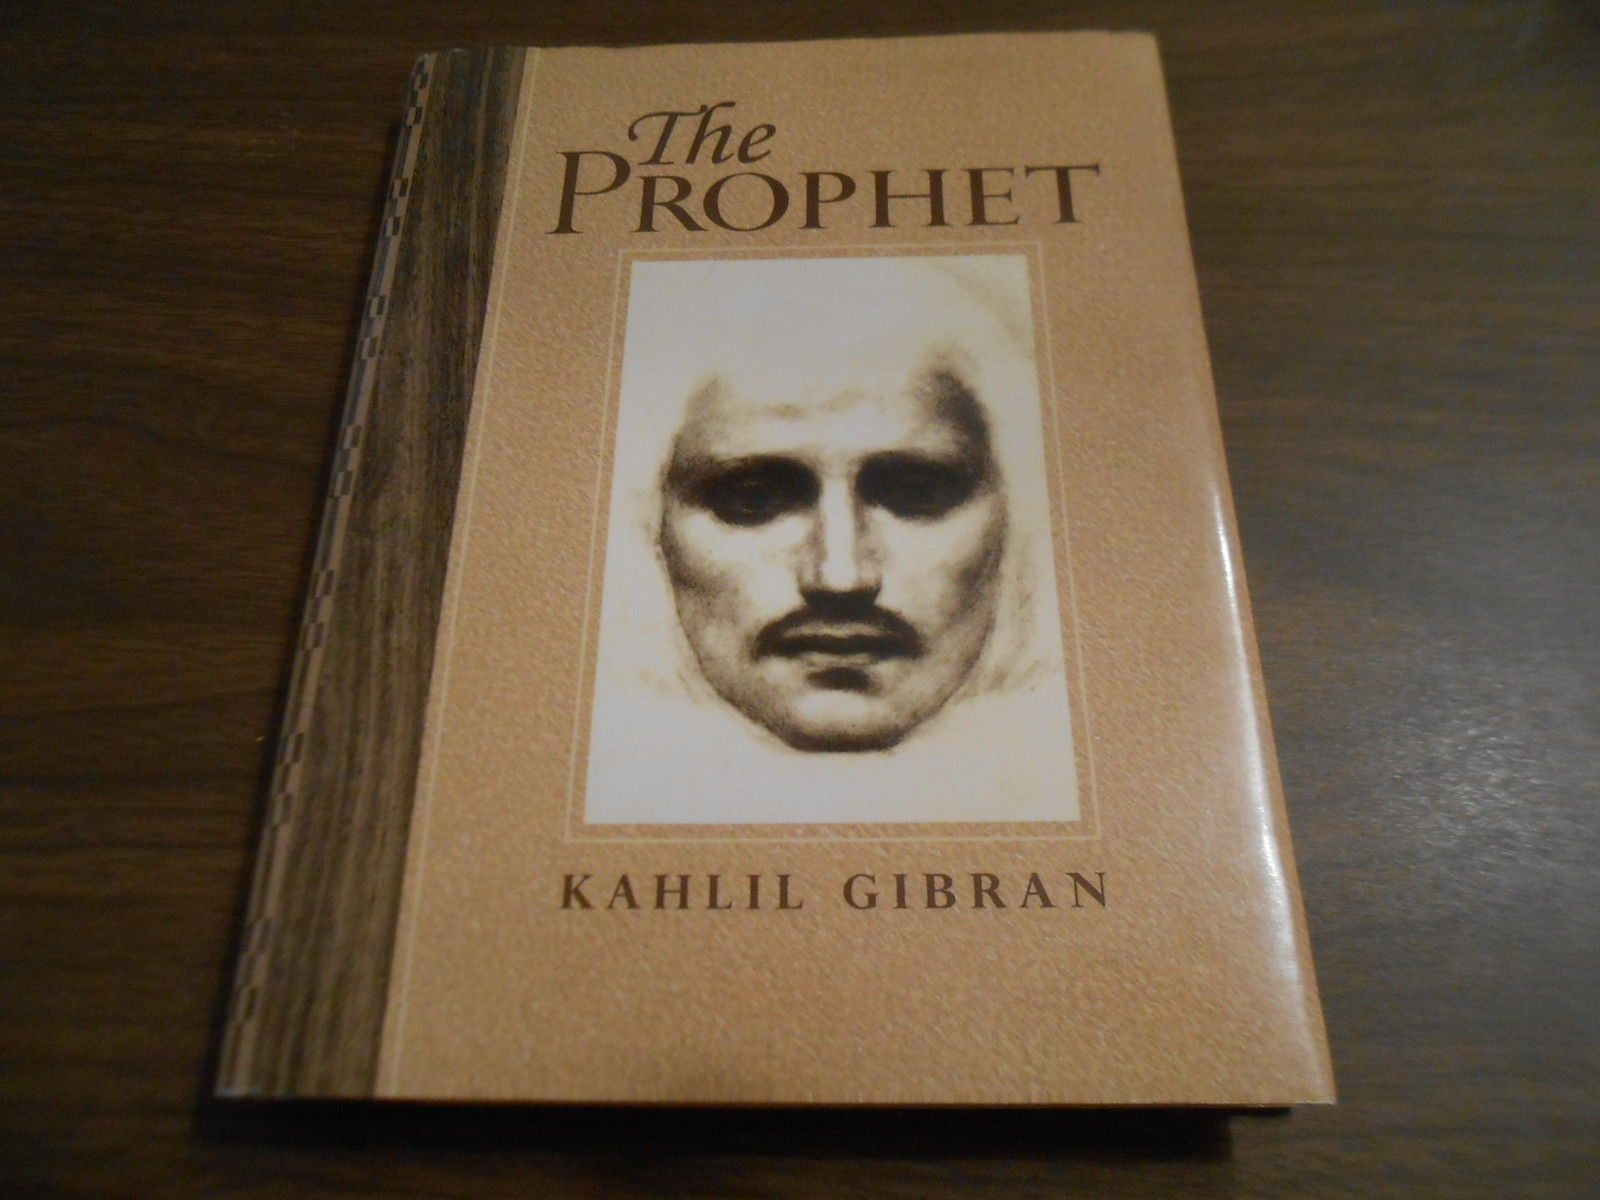 Primary image for The Prophet  by Kahlil Gibran (Hardcover) timeless classic book totally awesome